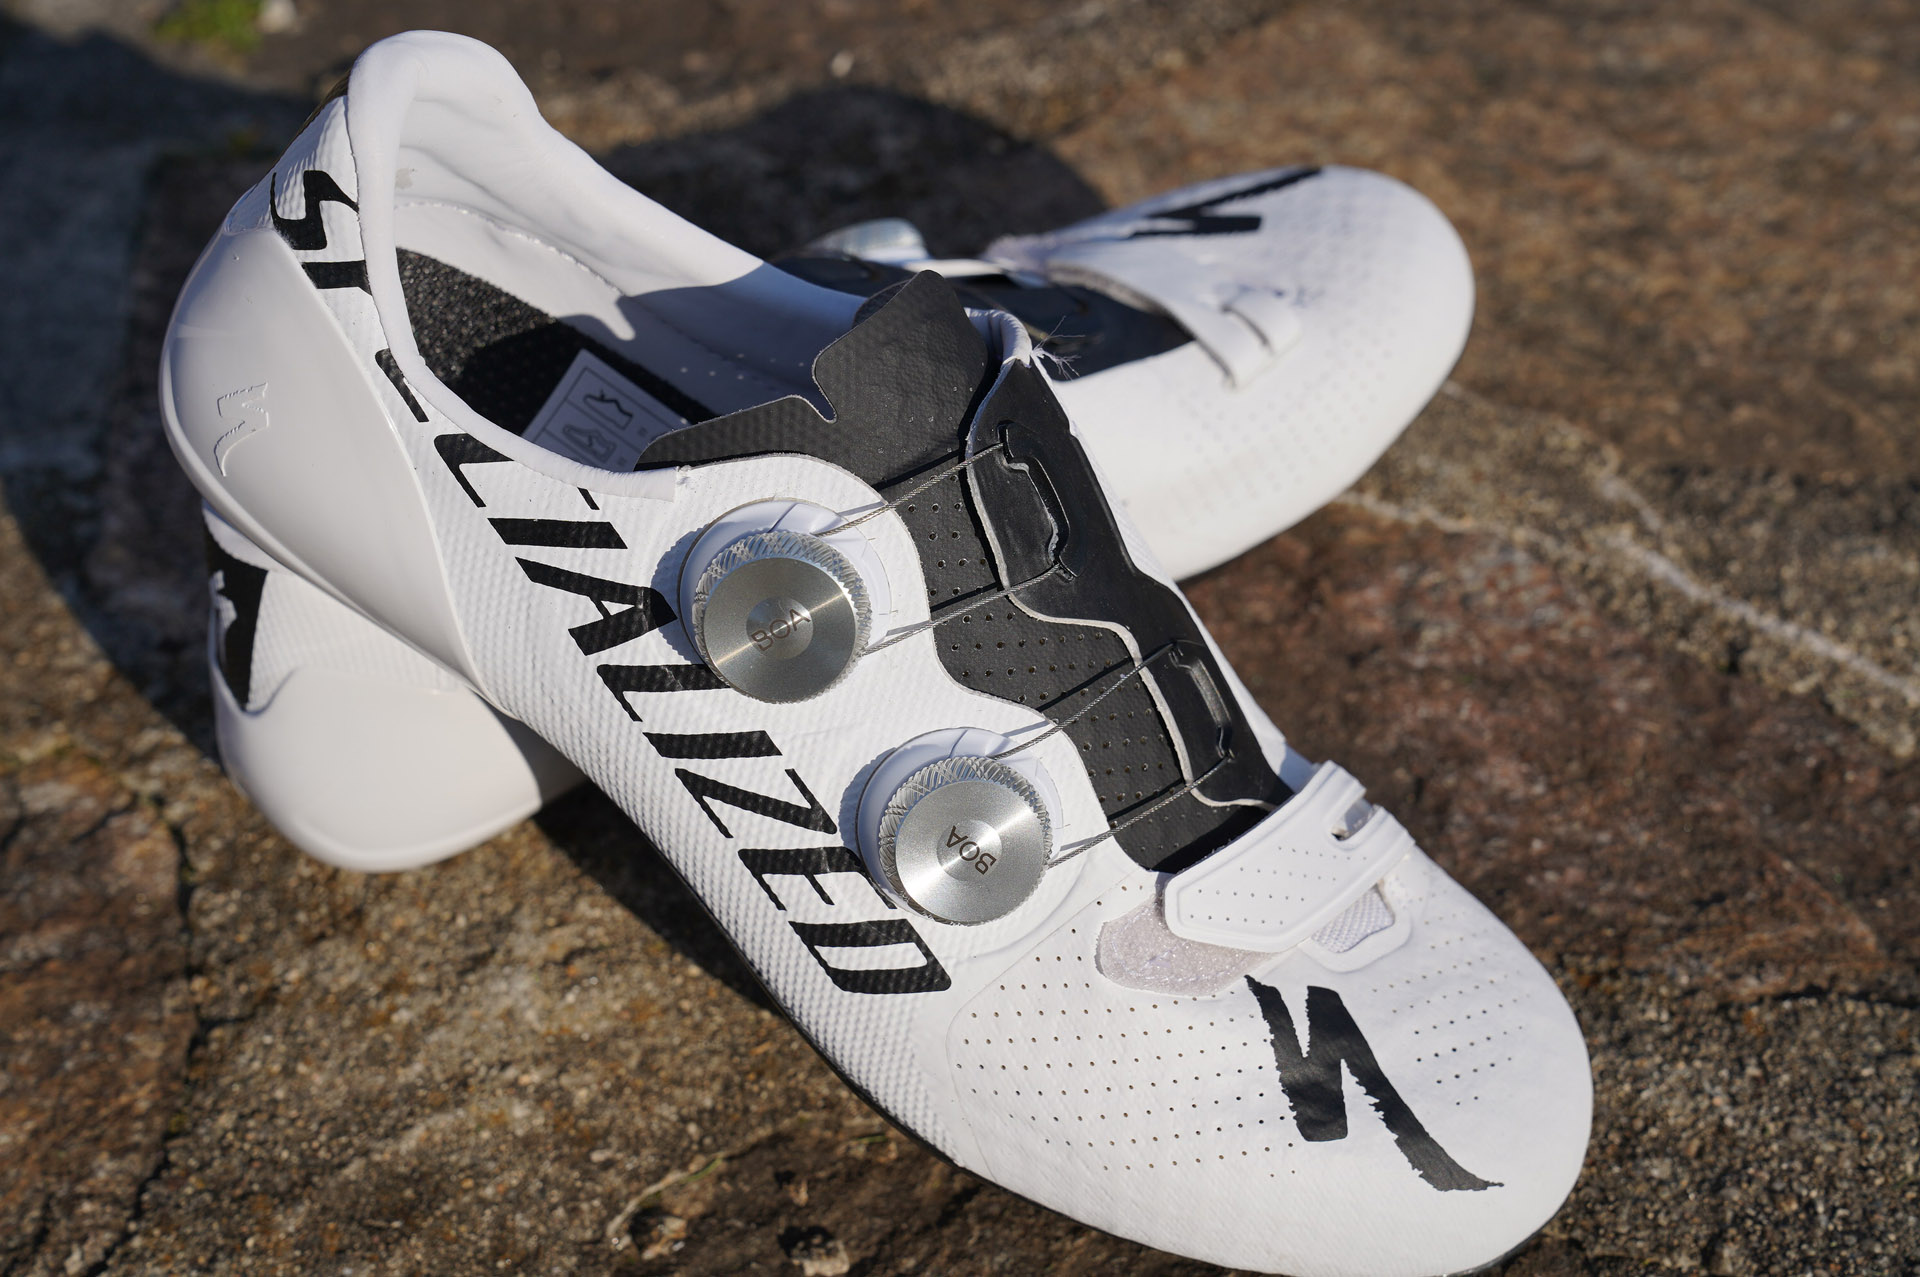 Chaussures Specialized S-Works 7 Team